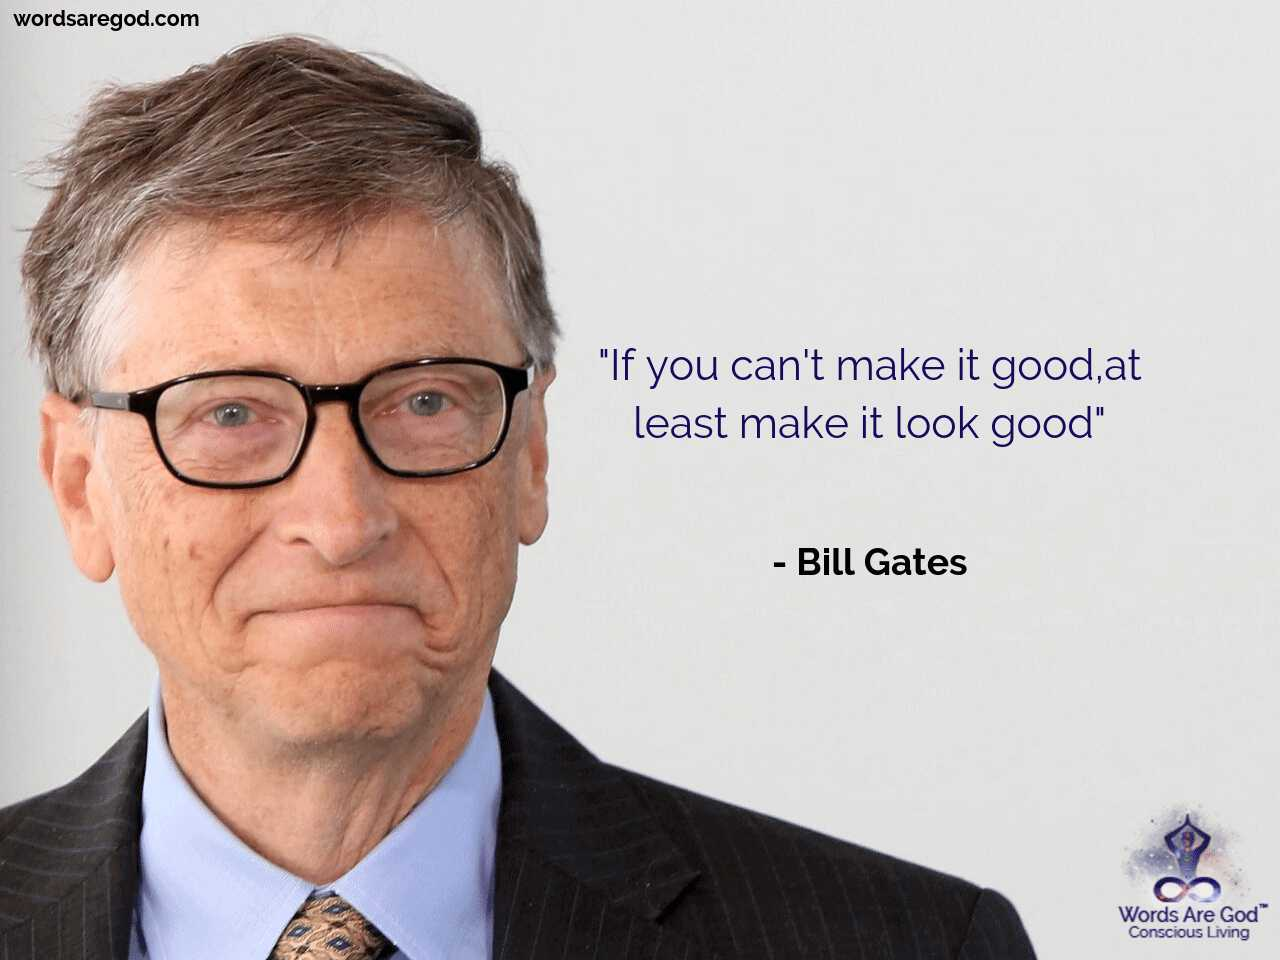 Bill Gates Inspirational quote by Bill Gates